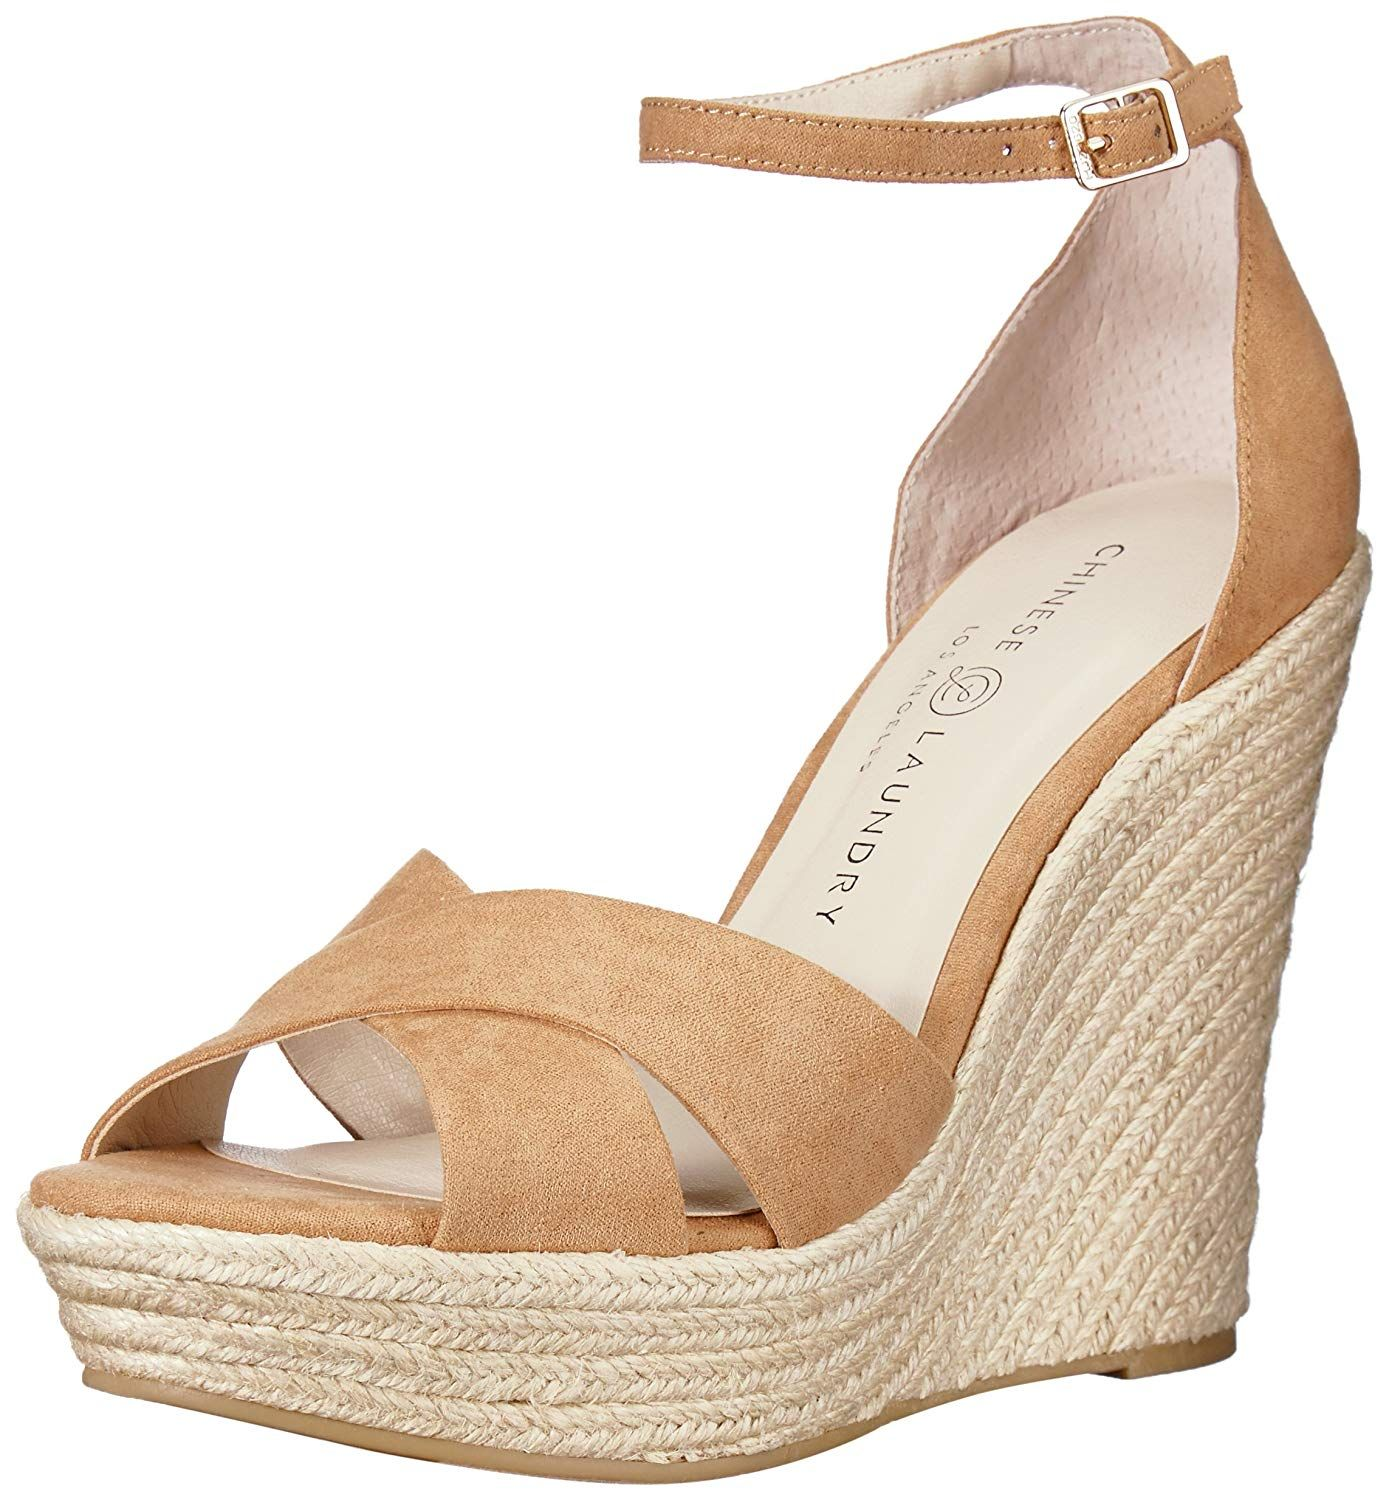 Chinese Laundry Women S Morgan Wedge Sandal Two Piece Peep Toe